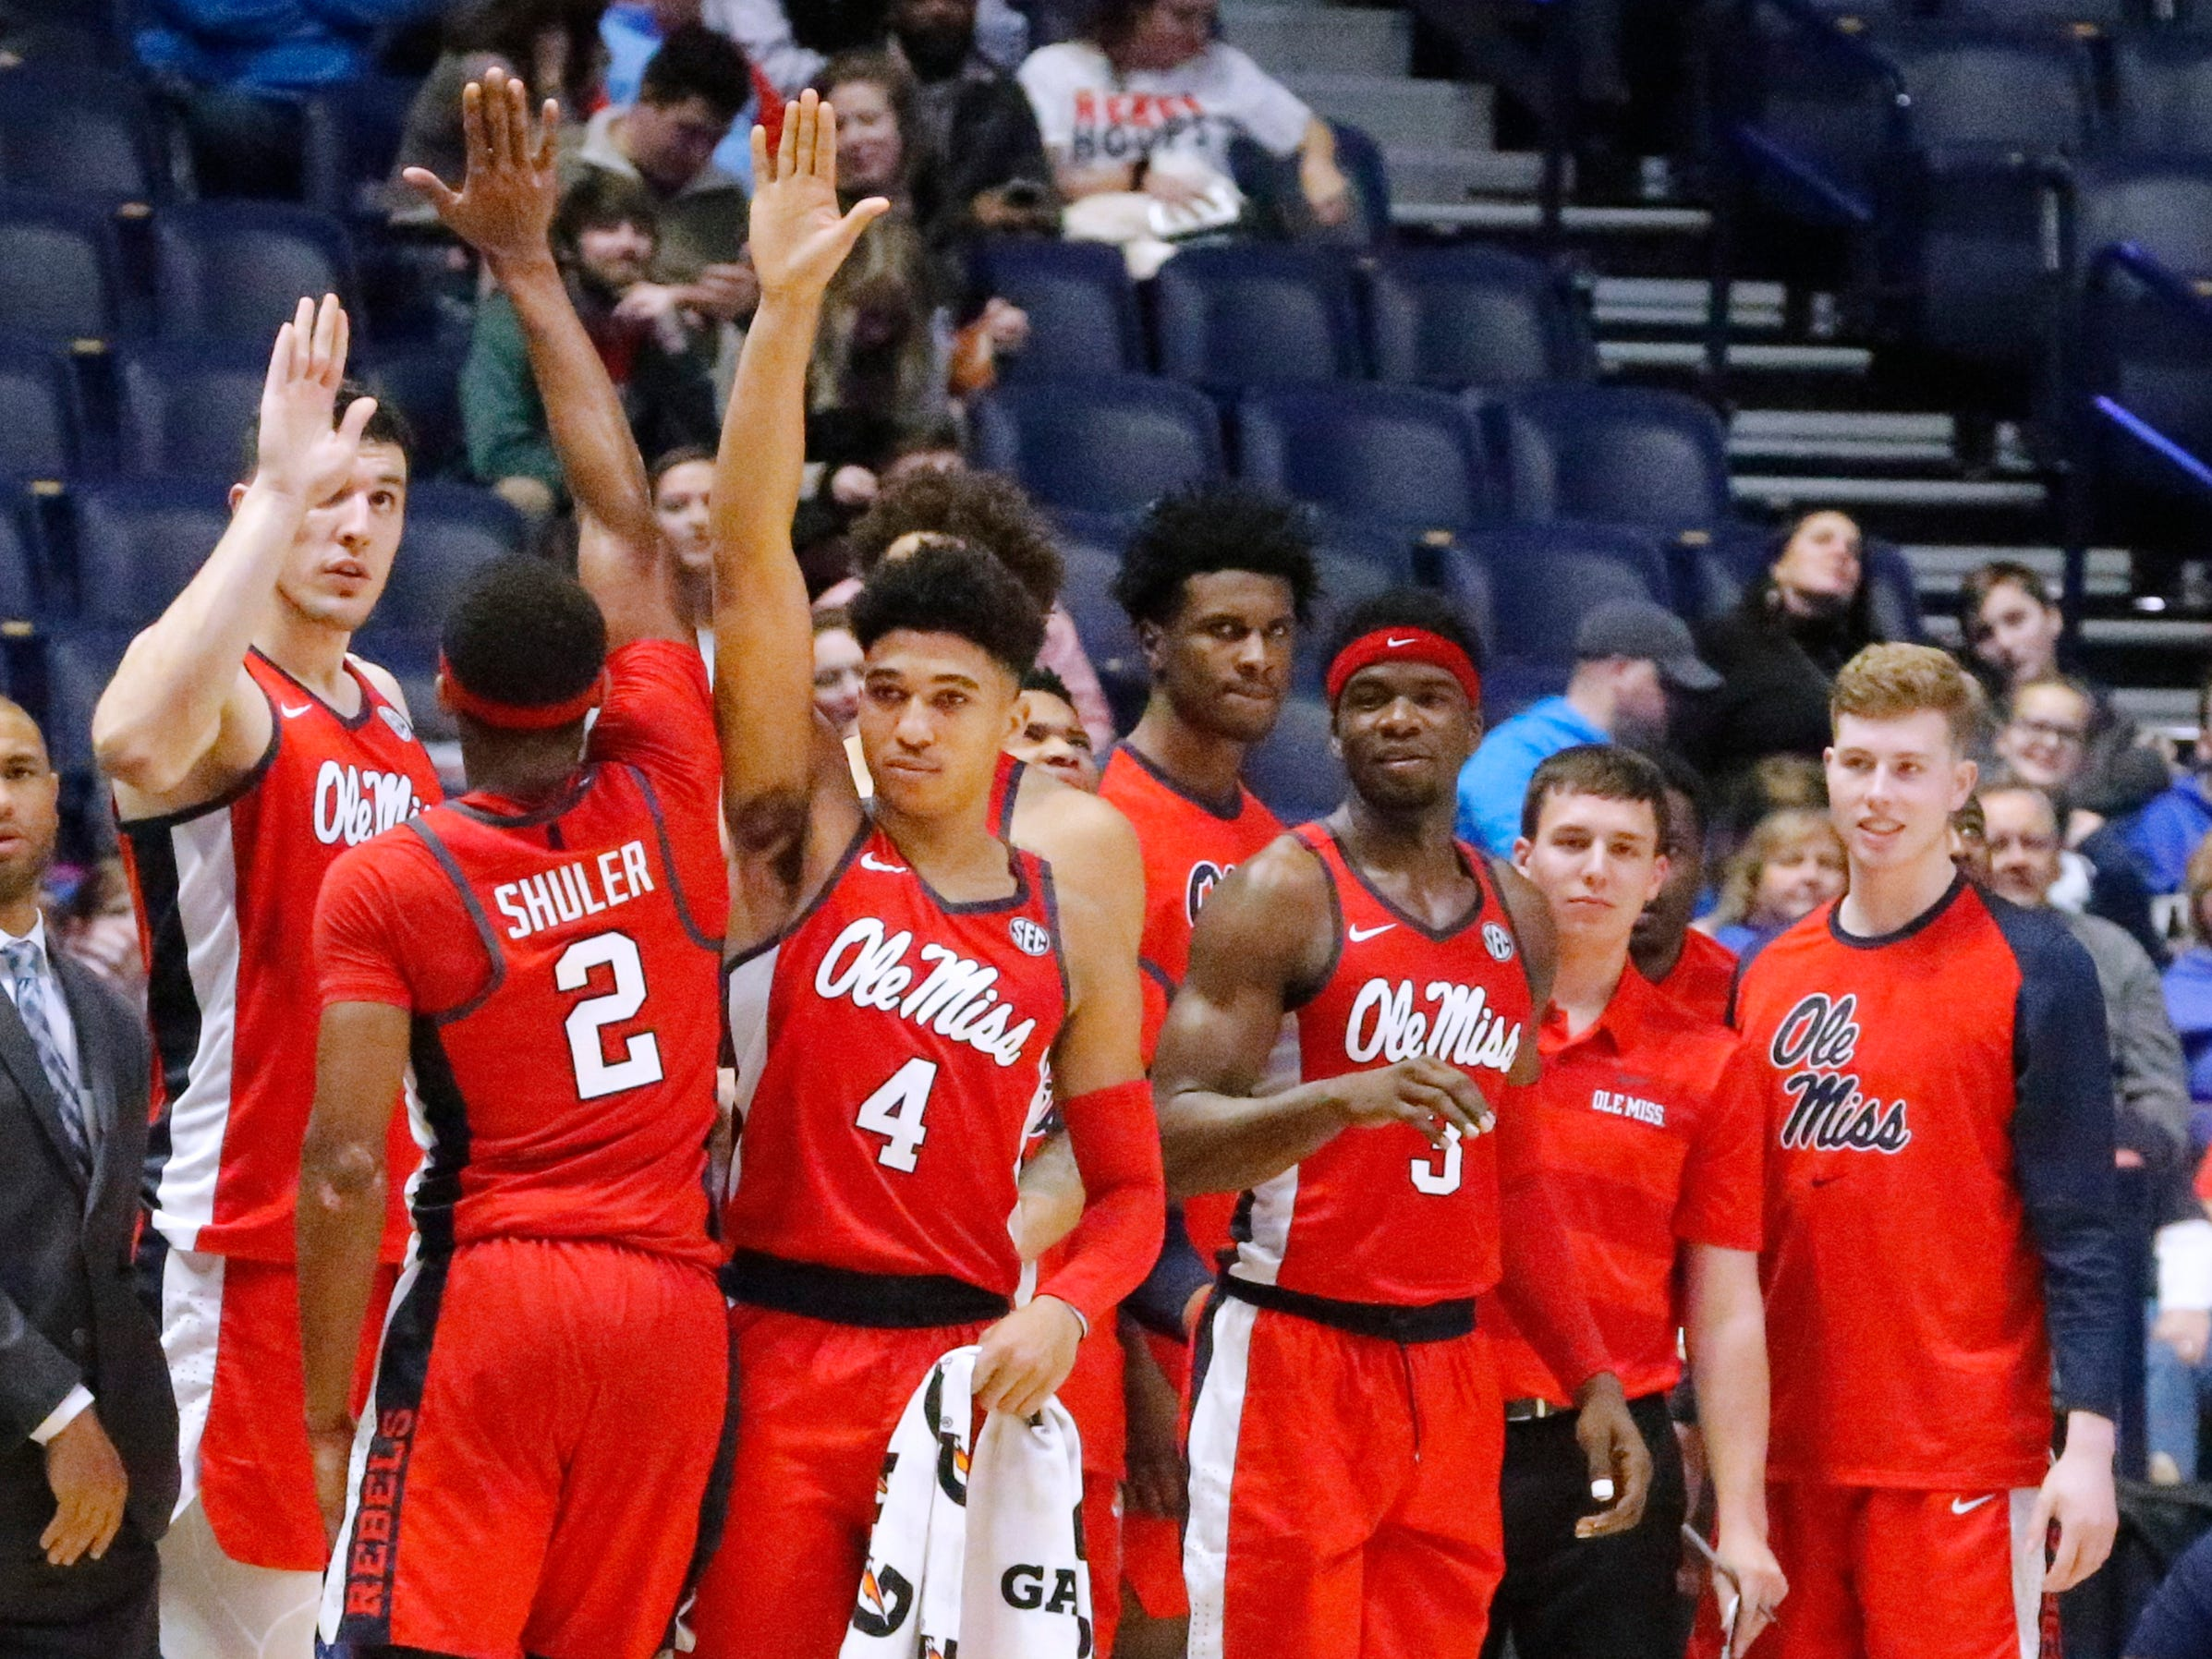 The Ole Miss bench celebrates with Ole Miss' guard Devontae Shuler (2) as he comes out of the game against MTSU on Friday Dec. 21, 2018, at Bridgestone Arena.